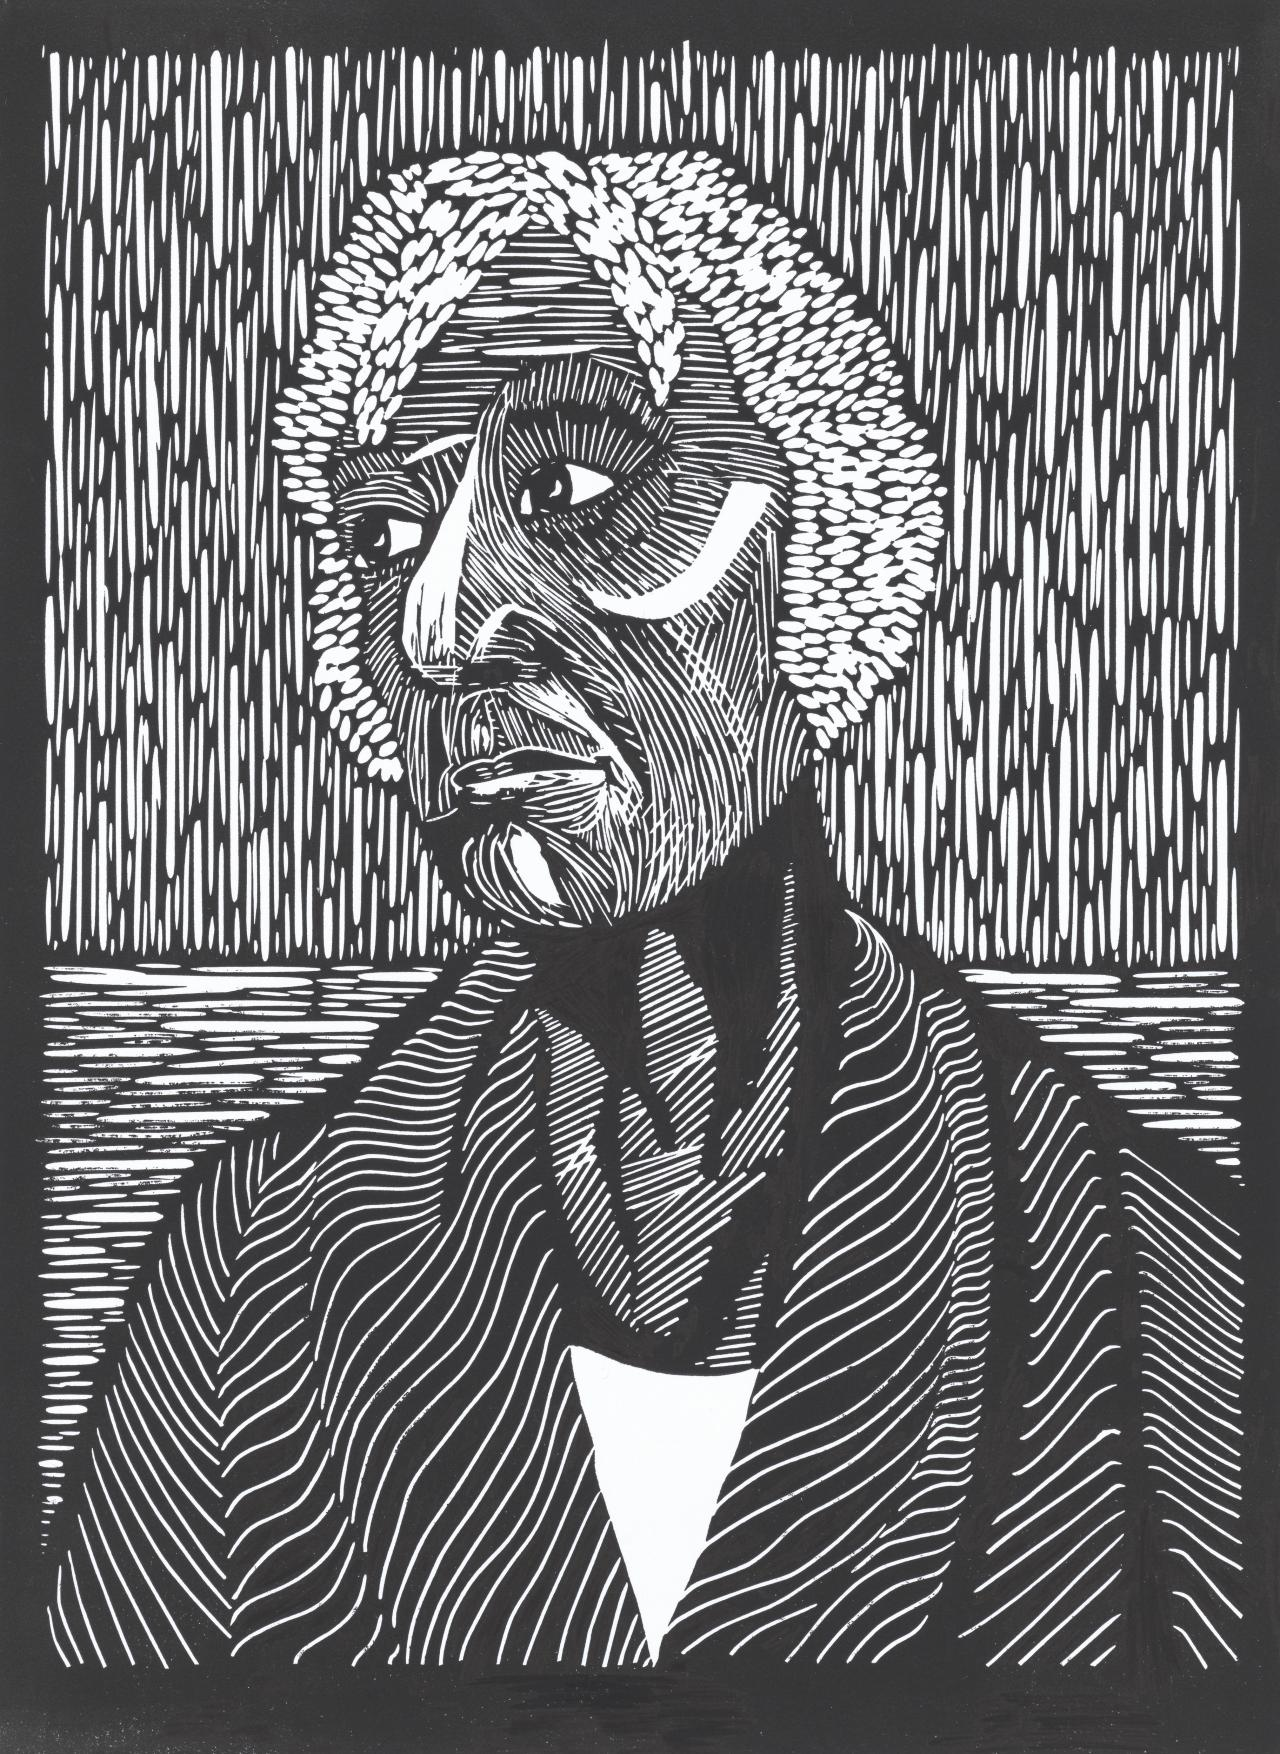 43465f3d6c Grandma two 2017 from the Mothers 2 series linocut 36.9 x 27.0 cm (block  and sheet) St Kevin s College